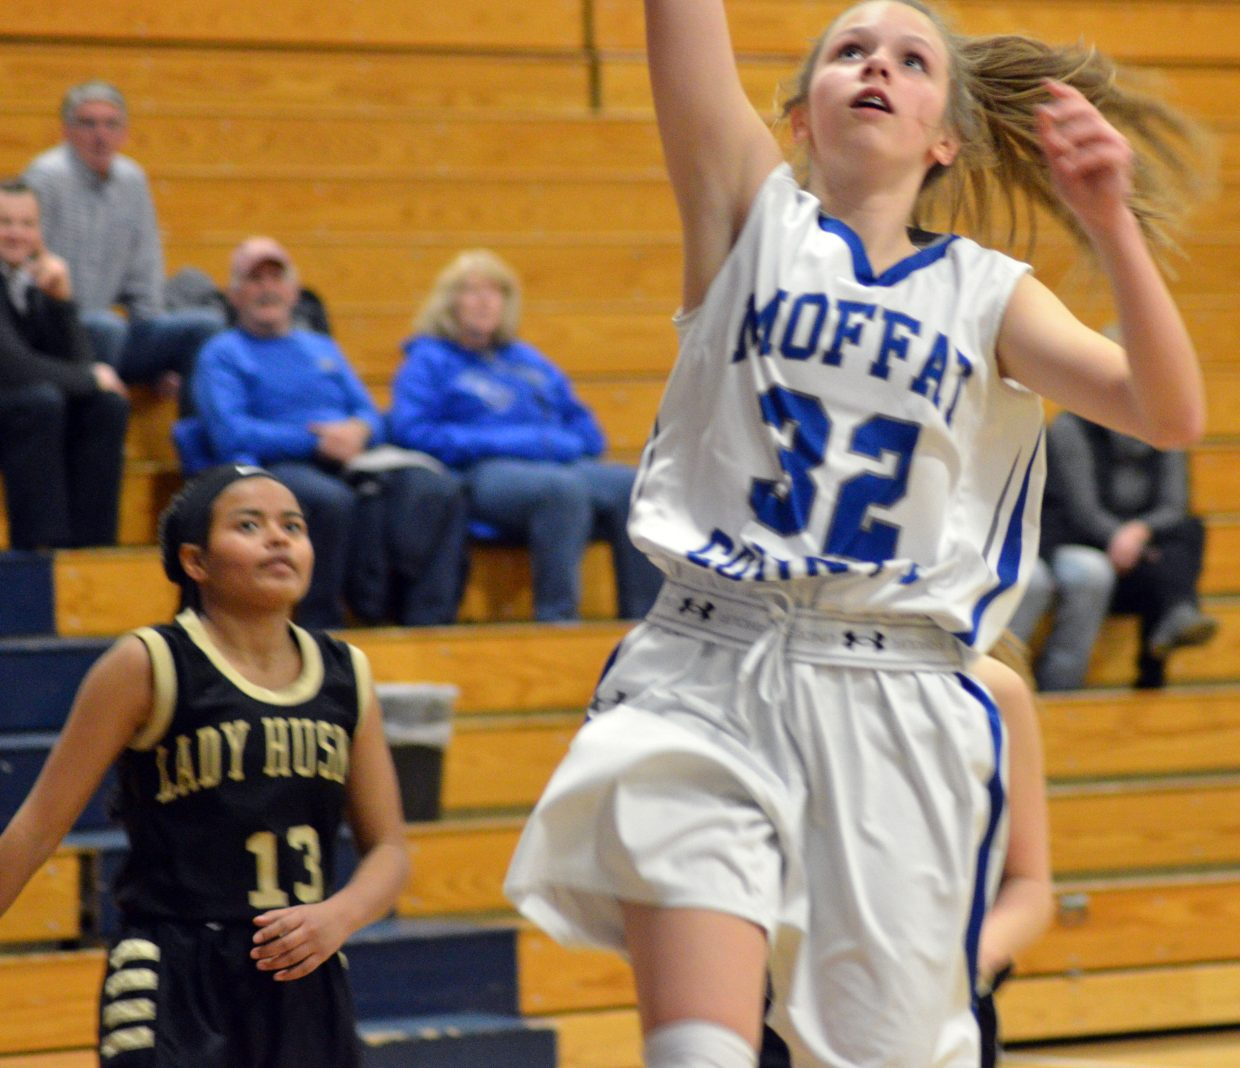 Moffat County High School's Emma Jones sinks a layup late in the game against Battle Mountain.